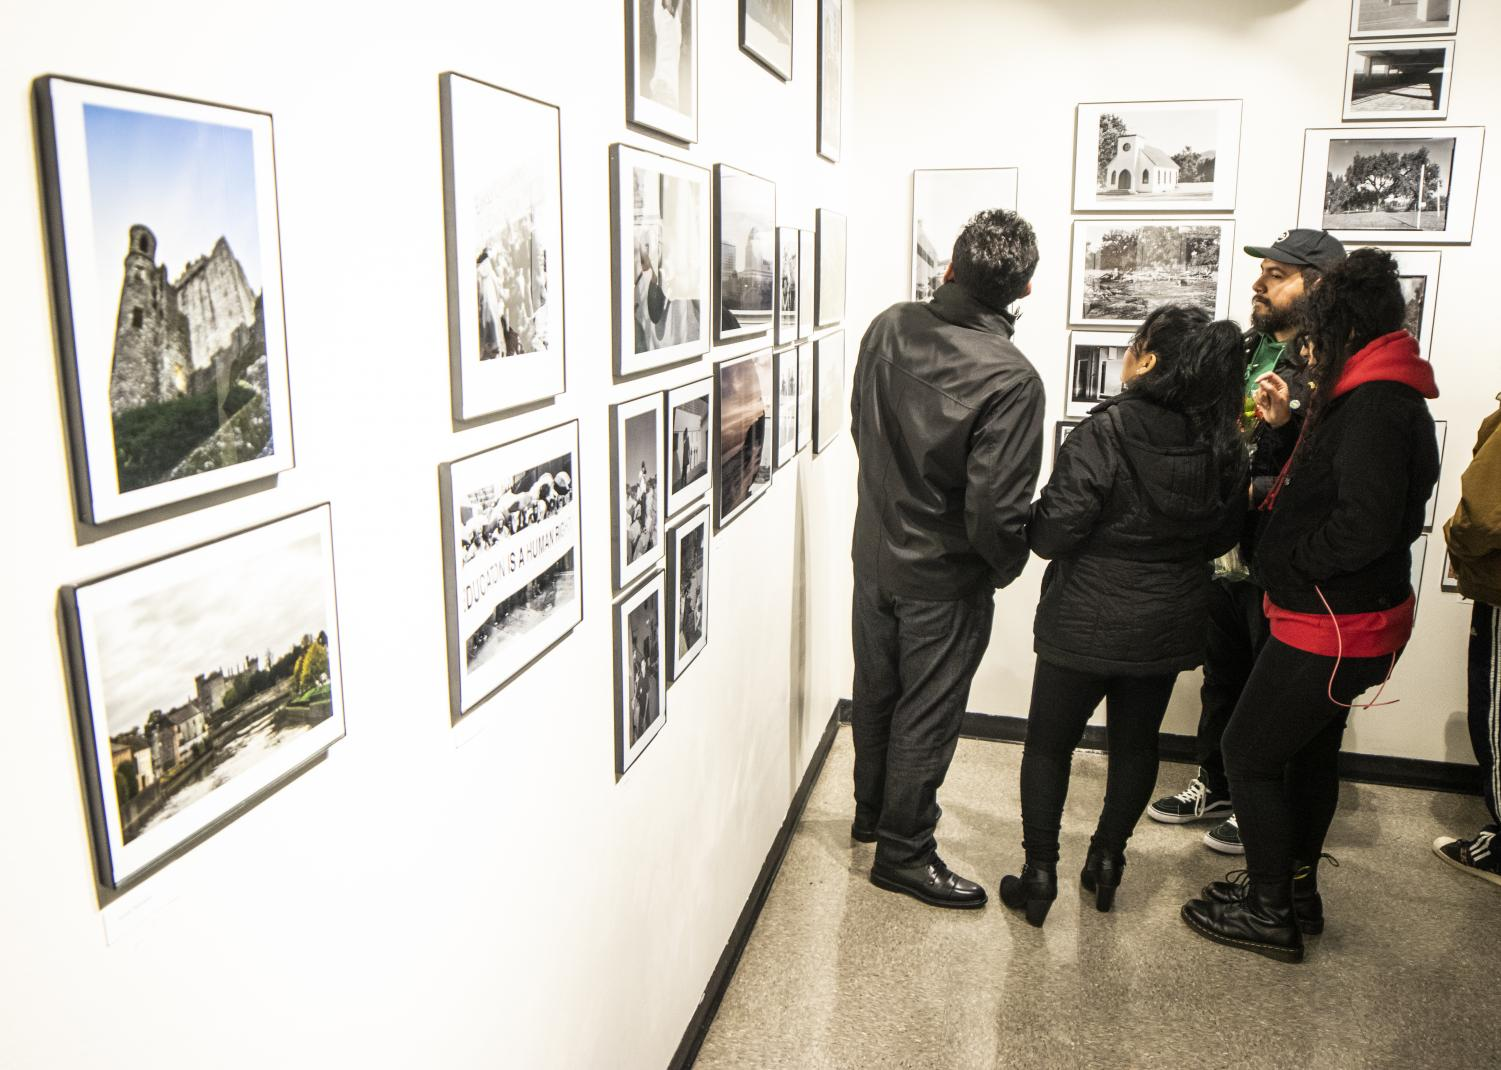 The Perez family views the works on display during the Work in Progress photo gallery on Wednesday, Nov. 21 in the Humanities building. Daniel Perez had work on display through participation in the Intermediate Photography class. Photo credit: Evan Reinhardt